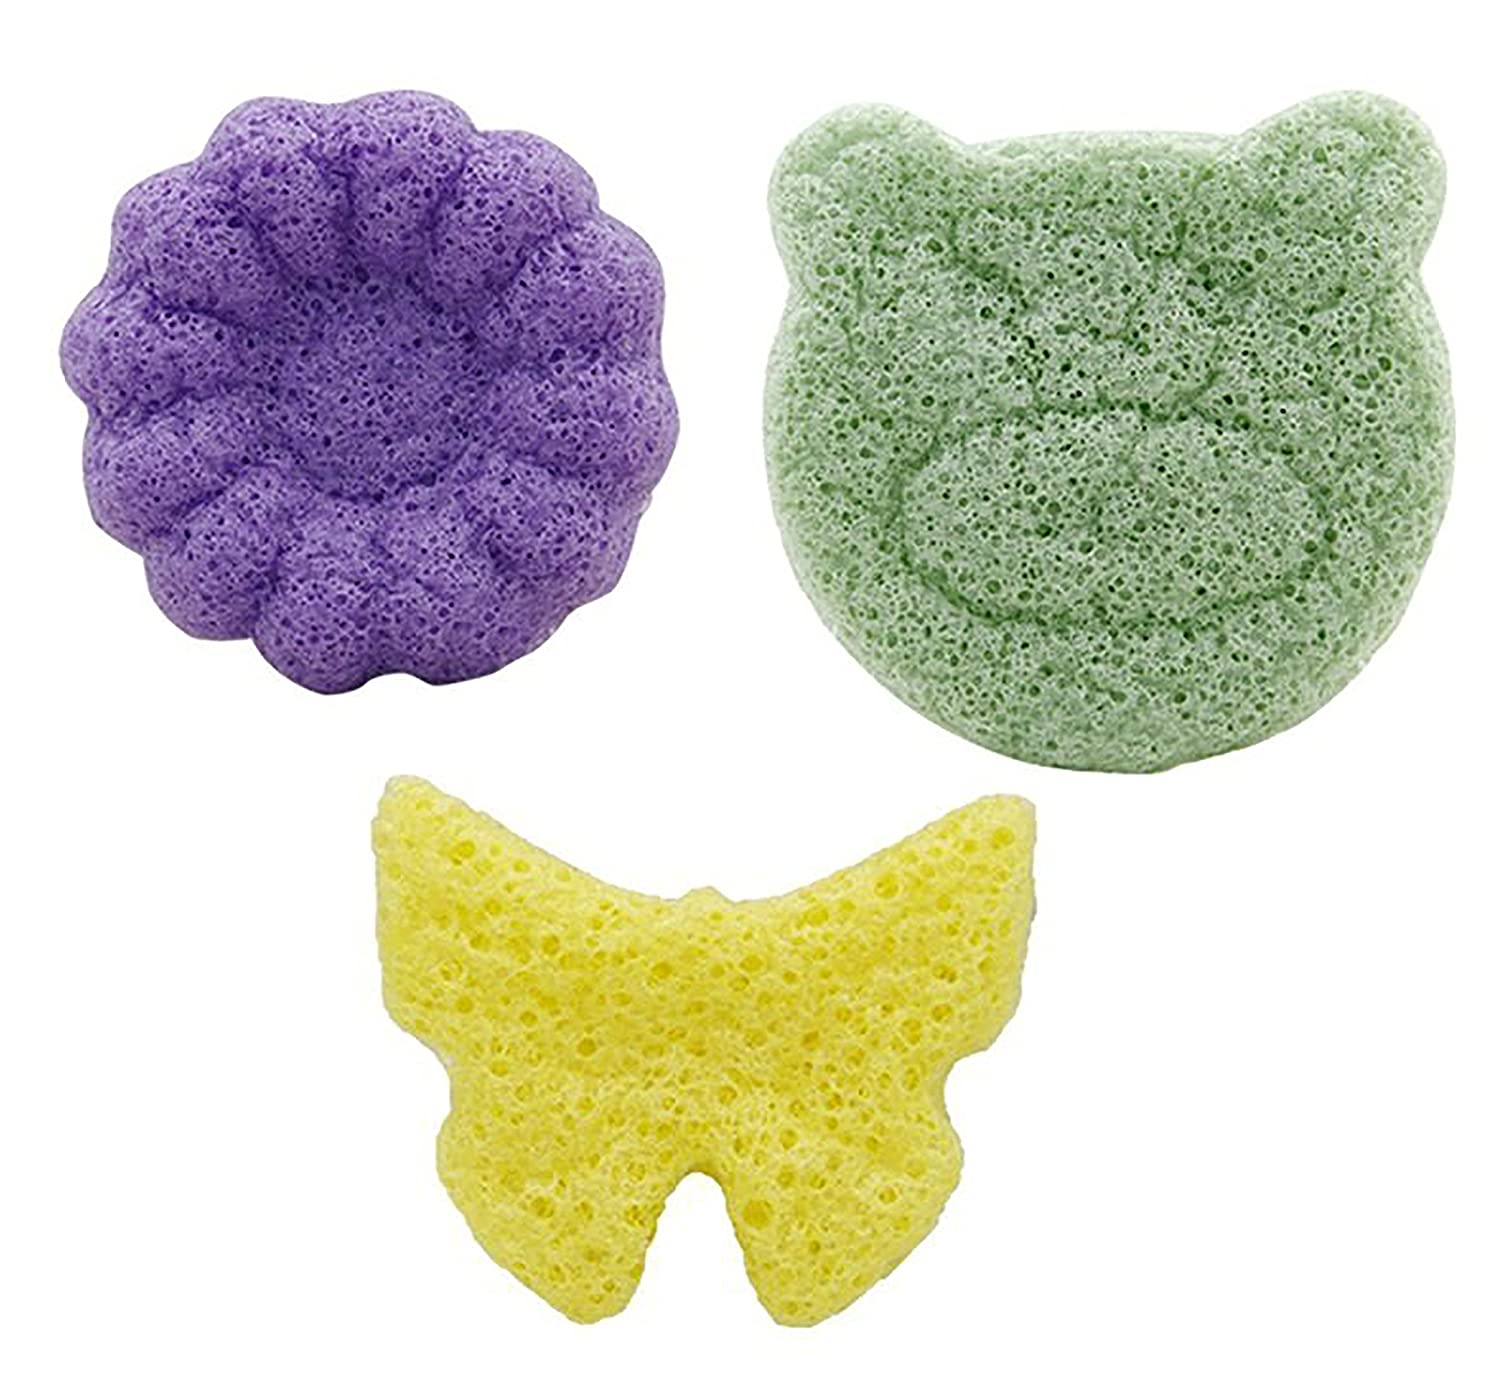 purifyou 100% All-Natural Premium Baby & Adult Bath Sponge